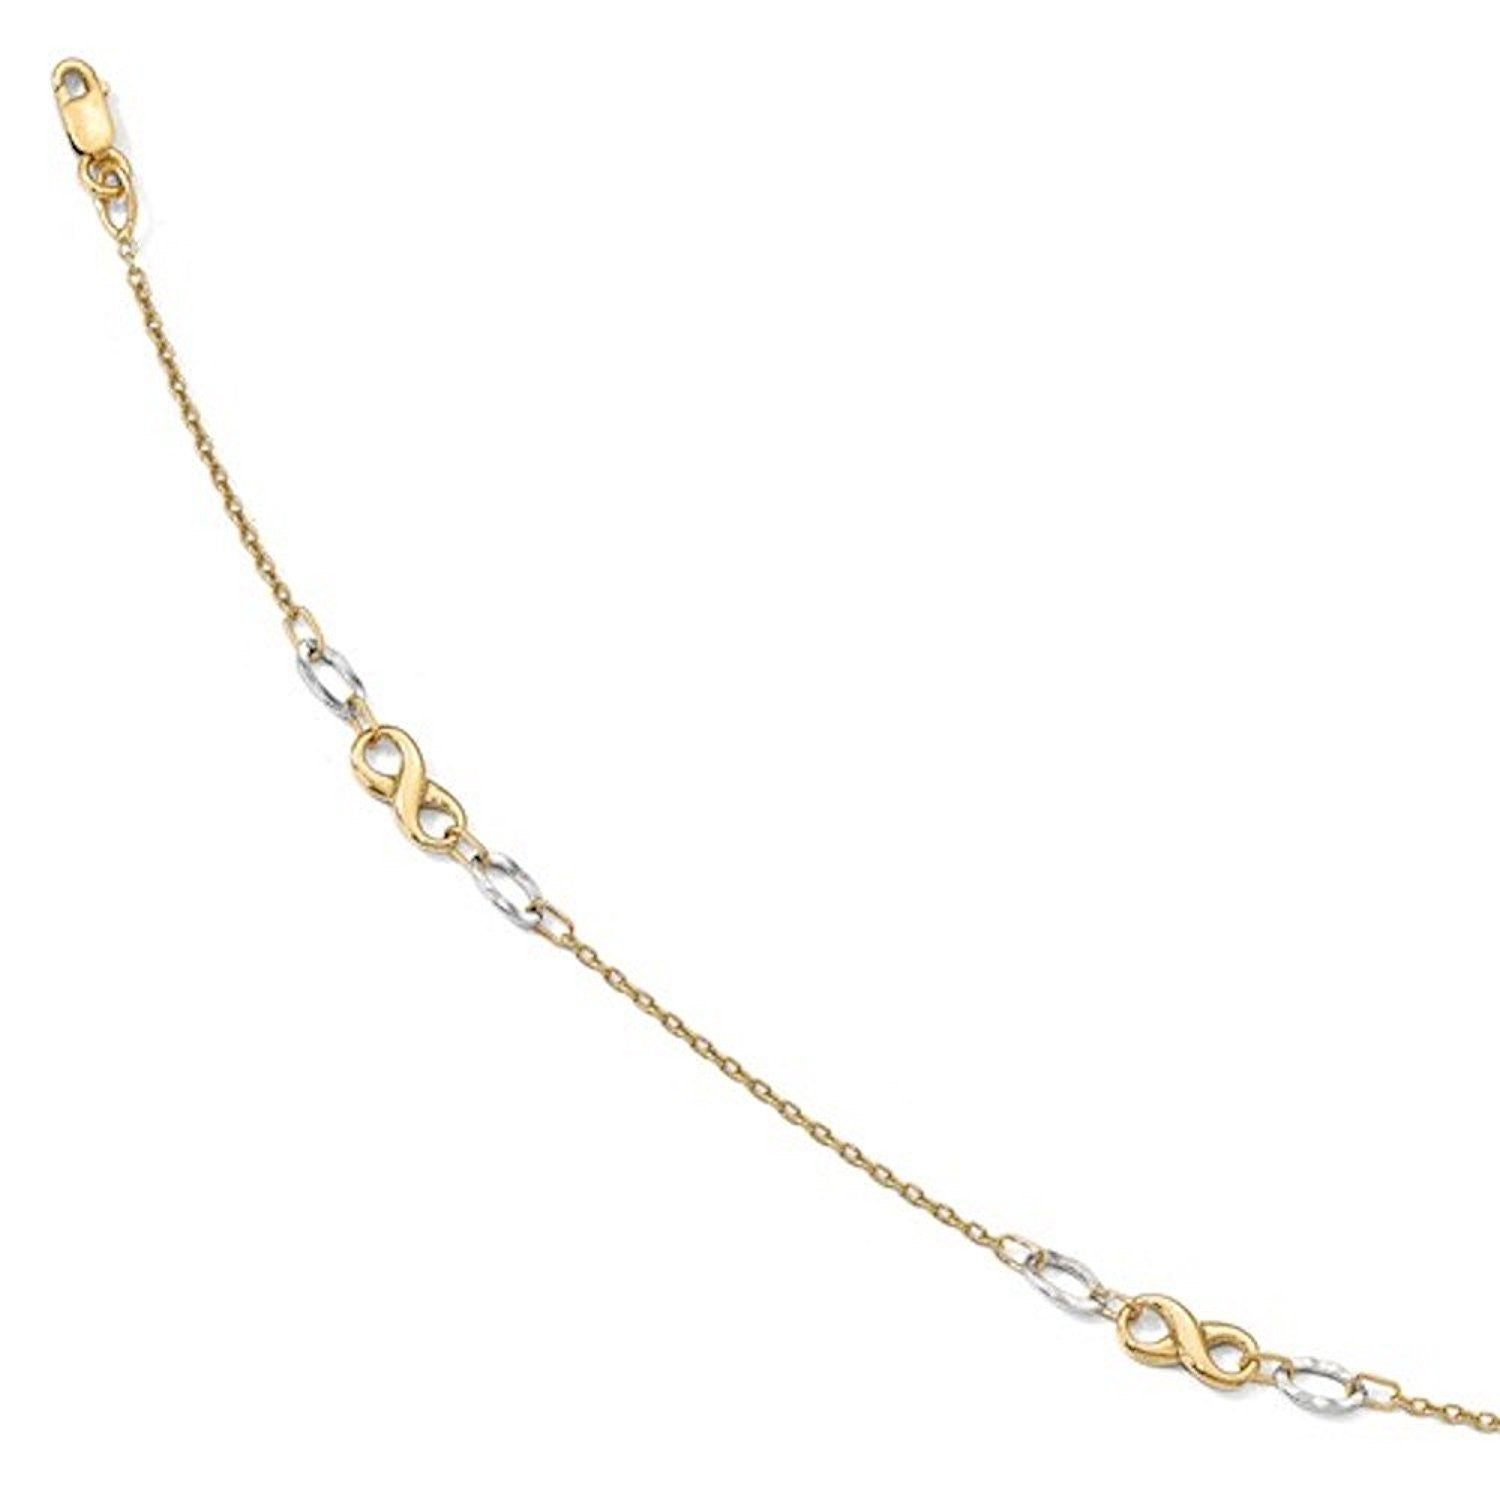 14k Gold Two Tone Infinity Anklet 10 inches